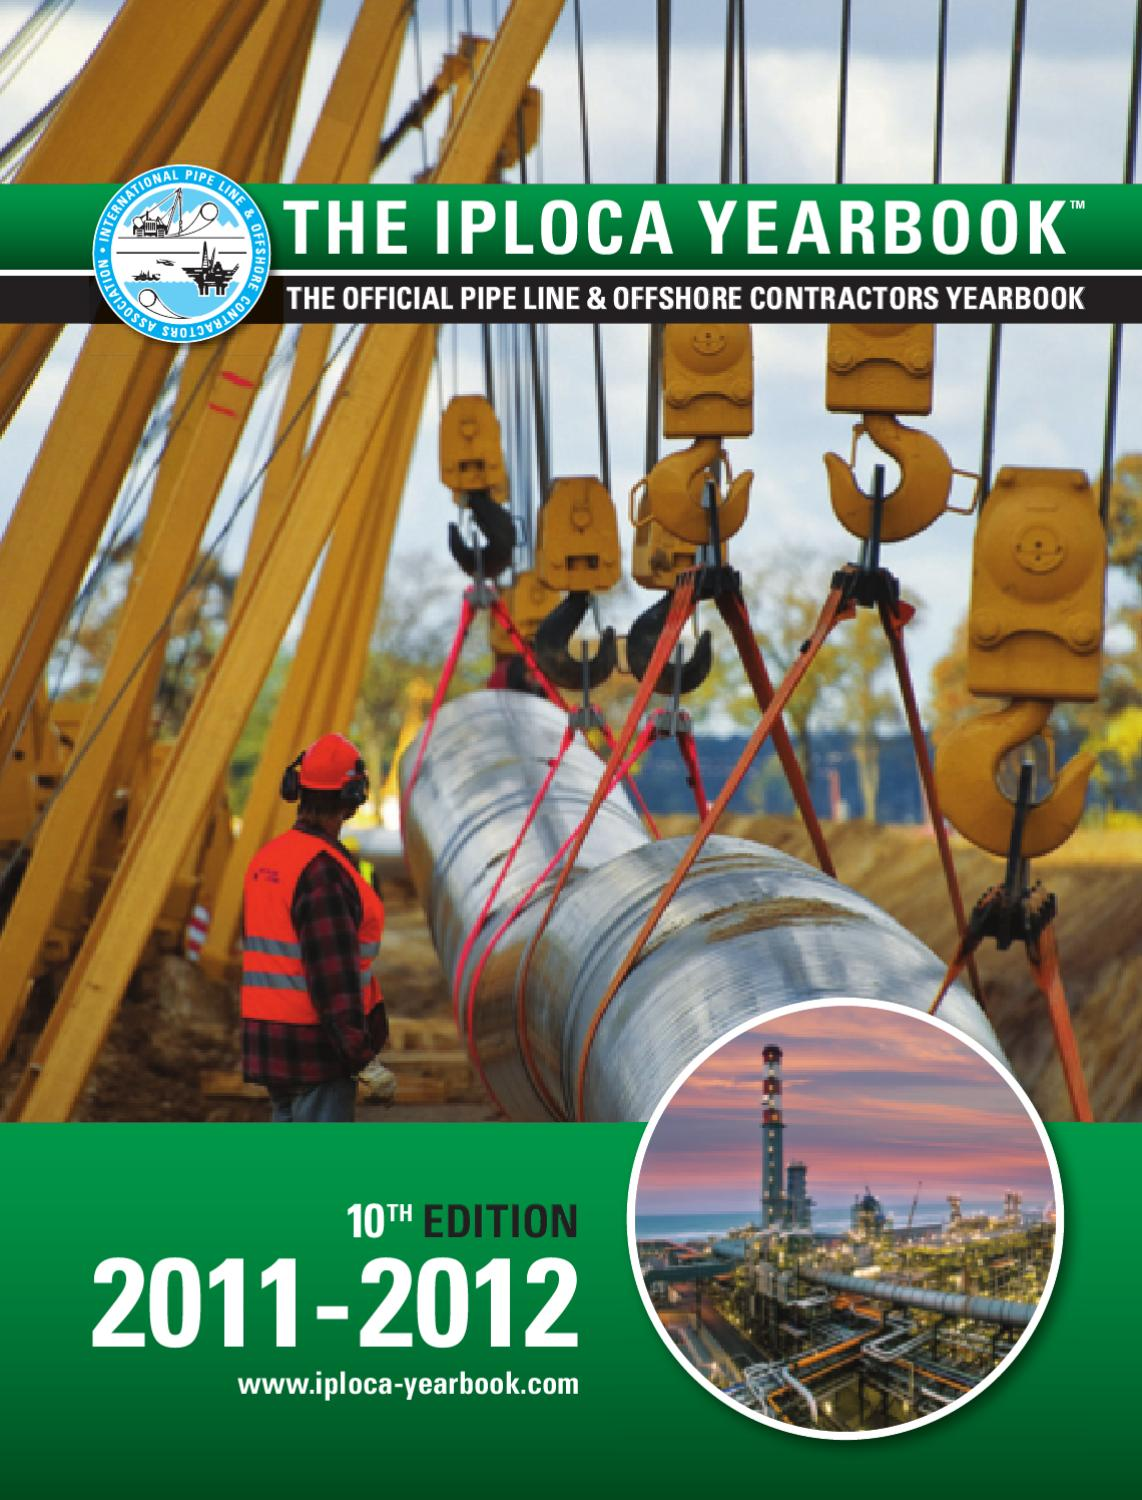 IPLOCA Yearbook 2011-2012 by Pedemex BV - issuu